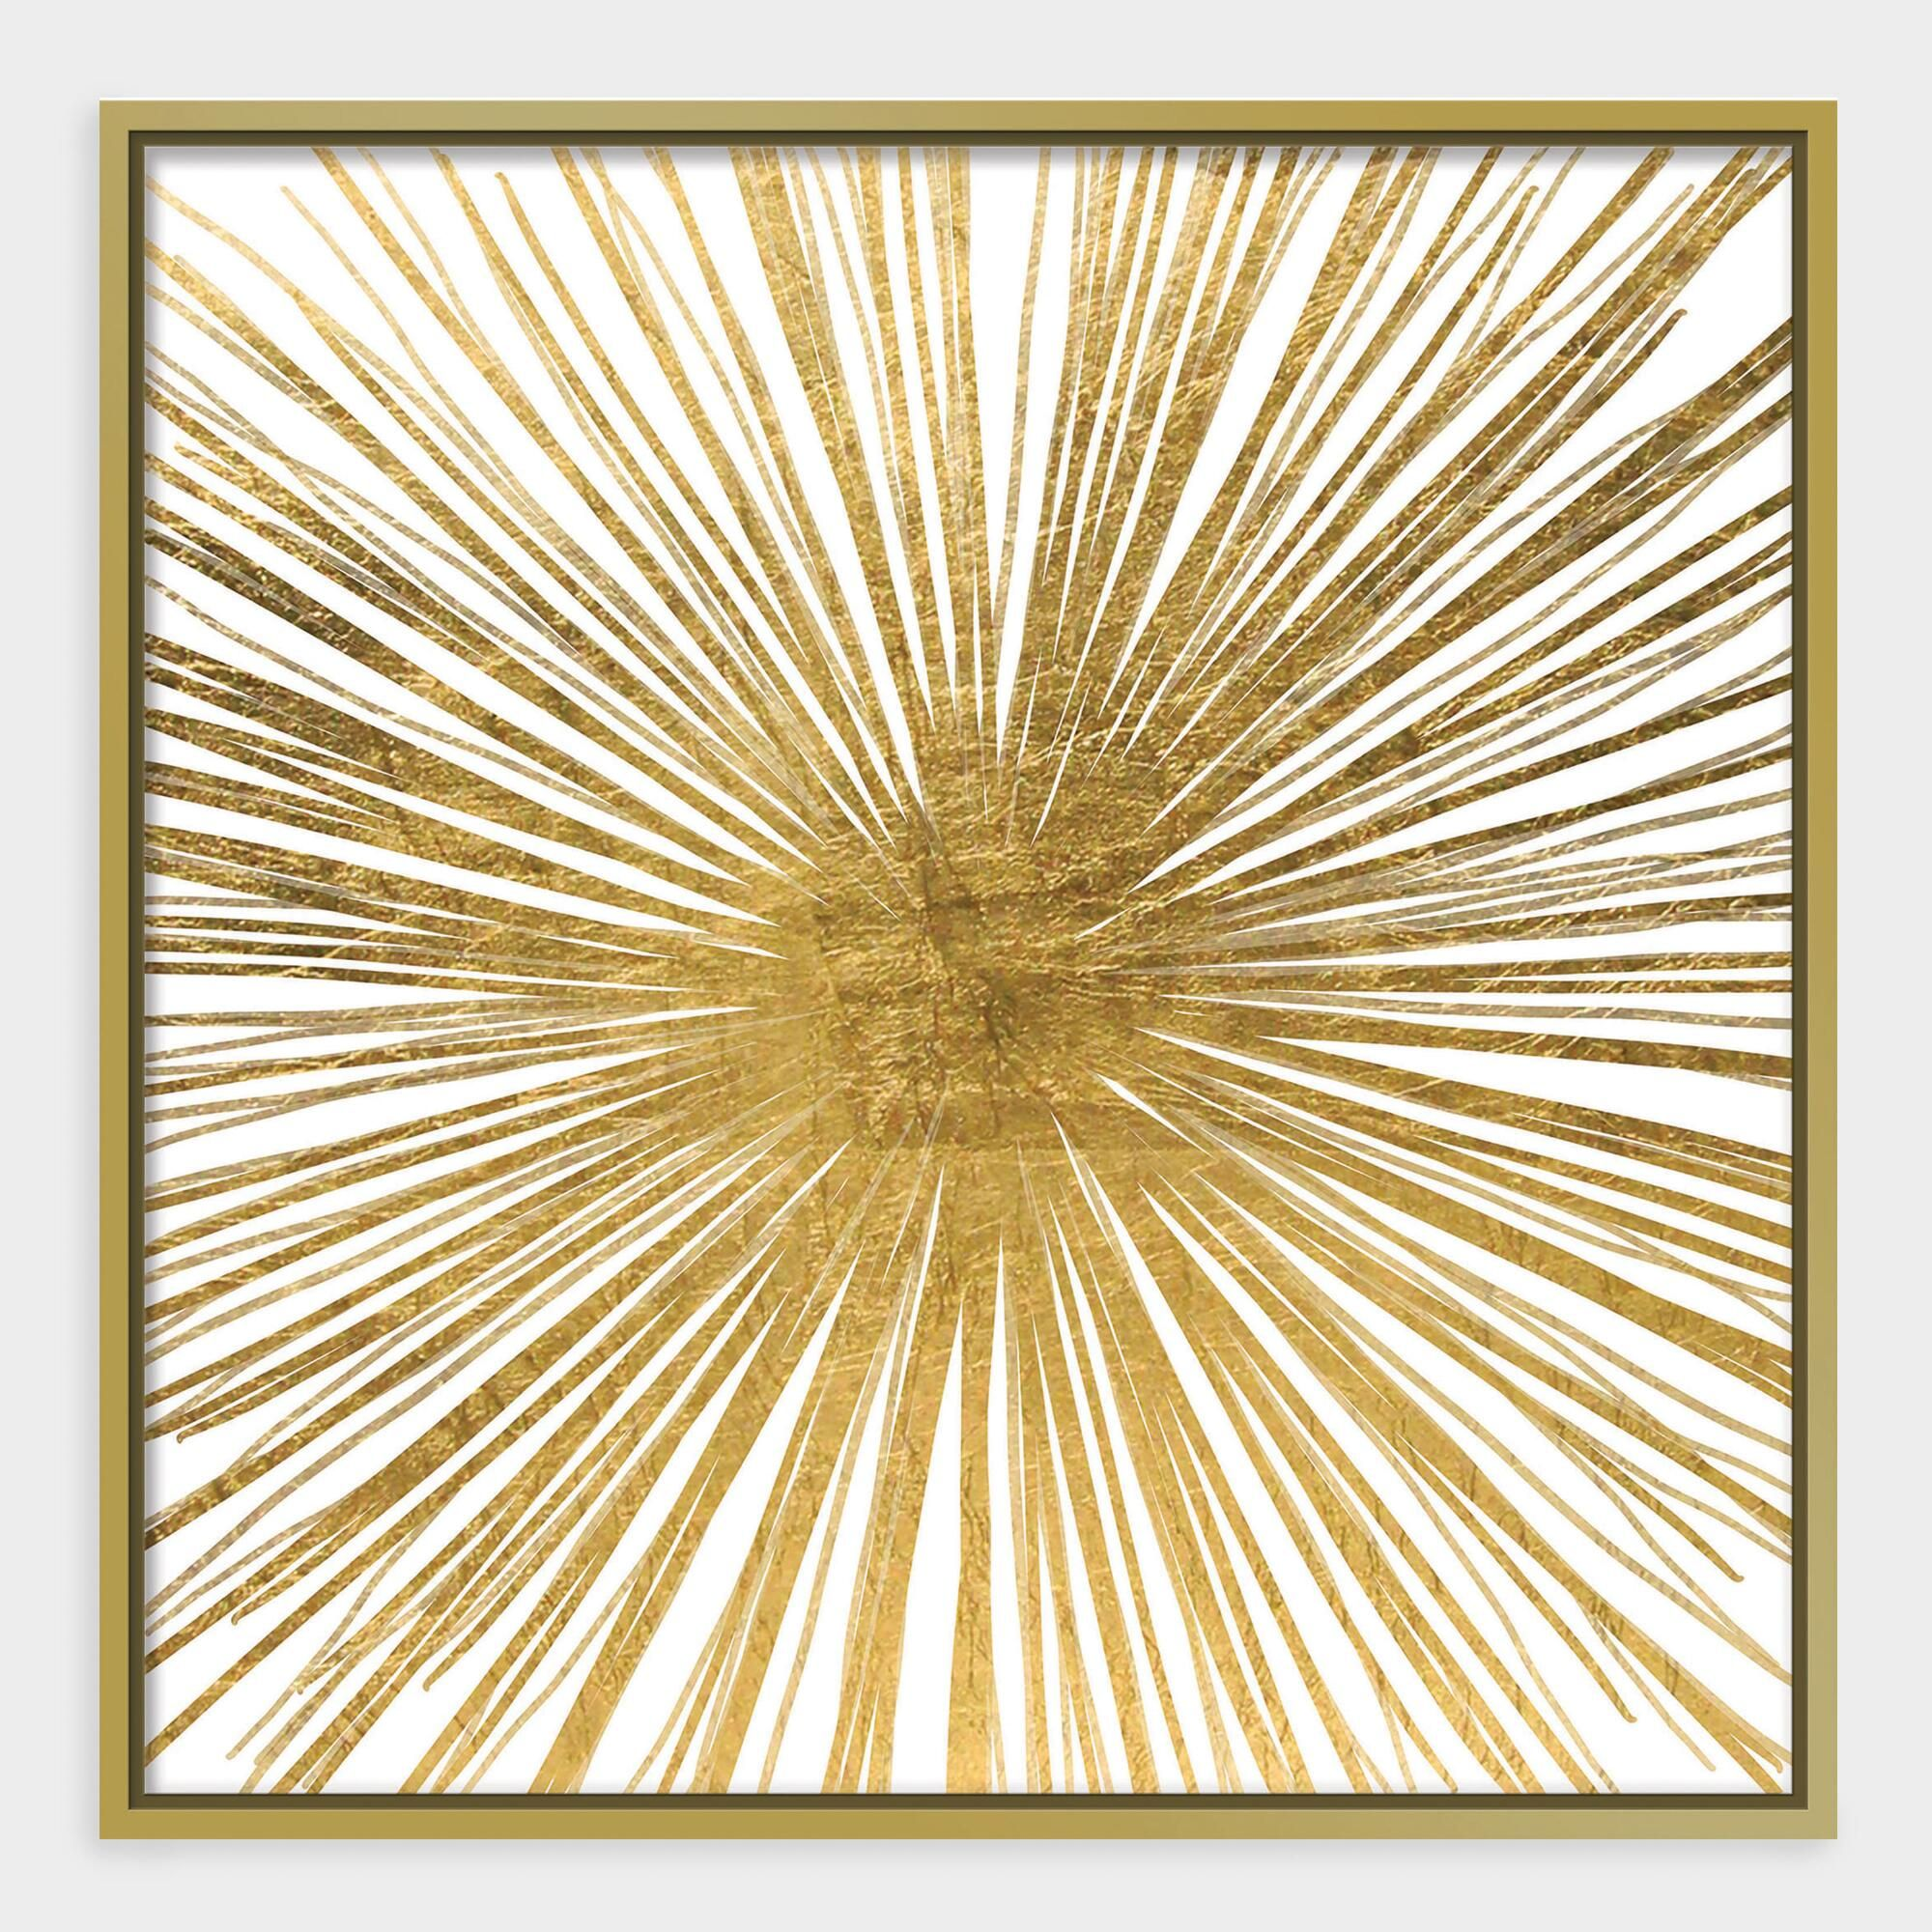 Golden Ray Wall Art In Gold Frame Canvas By World Market Gold Wall Art Framed Canvas Wall Art Gold Walls